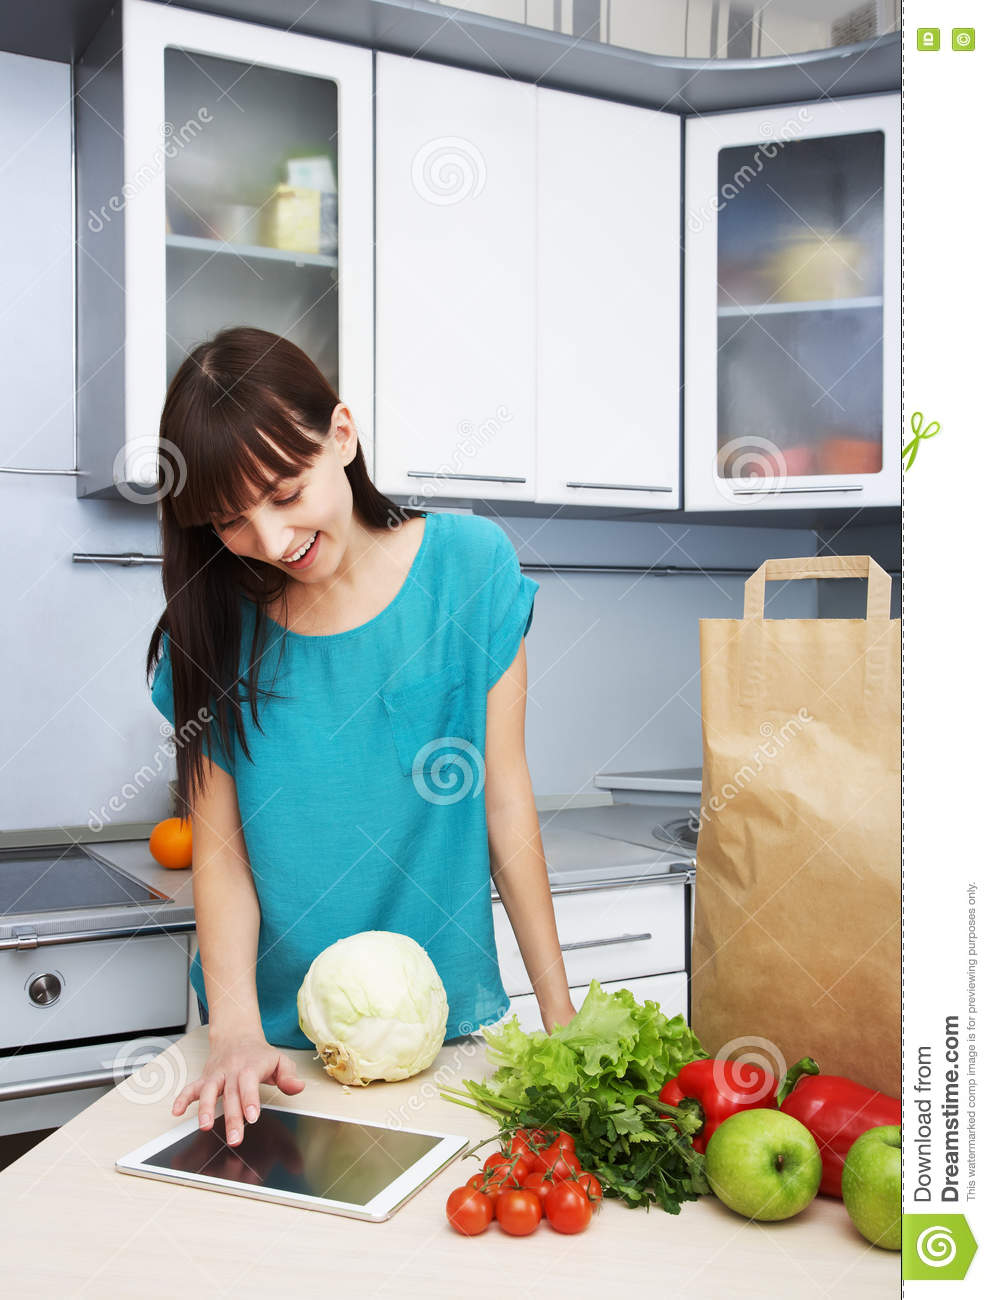 Housewife Uses A Tablet Computer In The Kitchen Stock Photo - Image ...